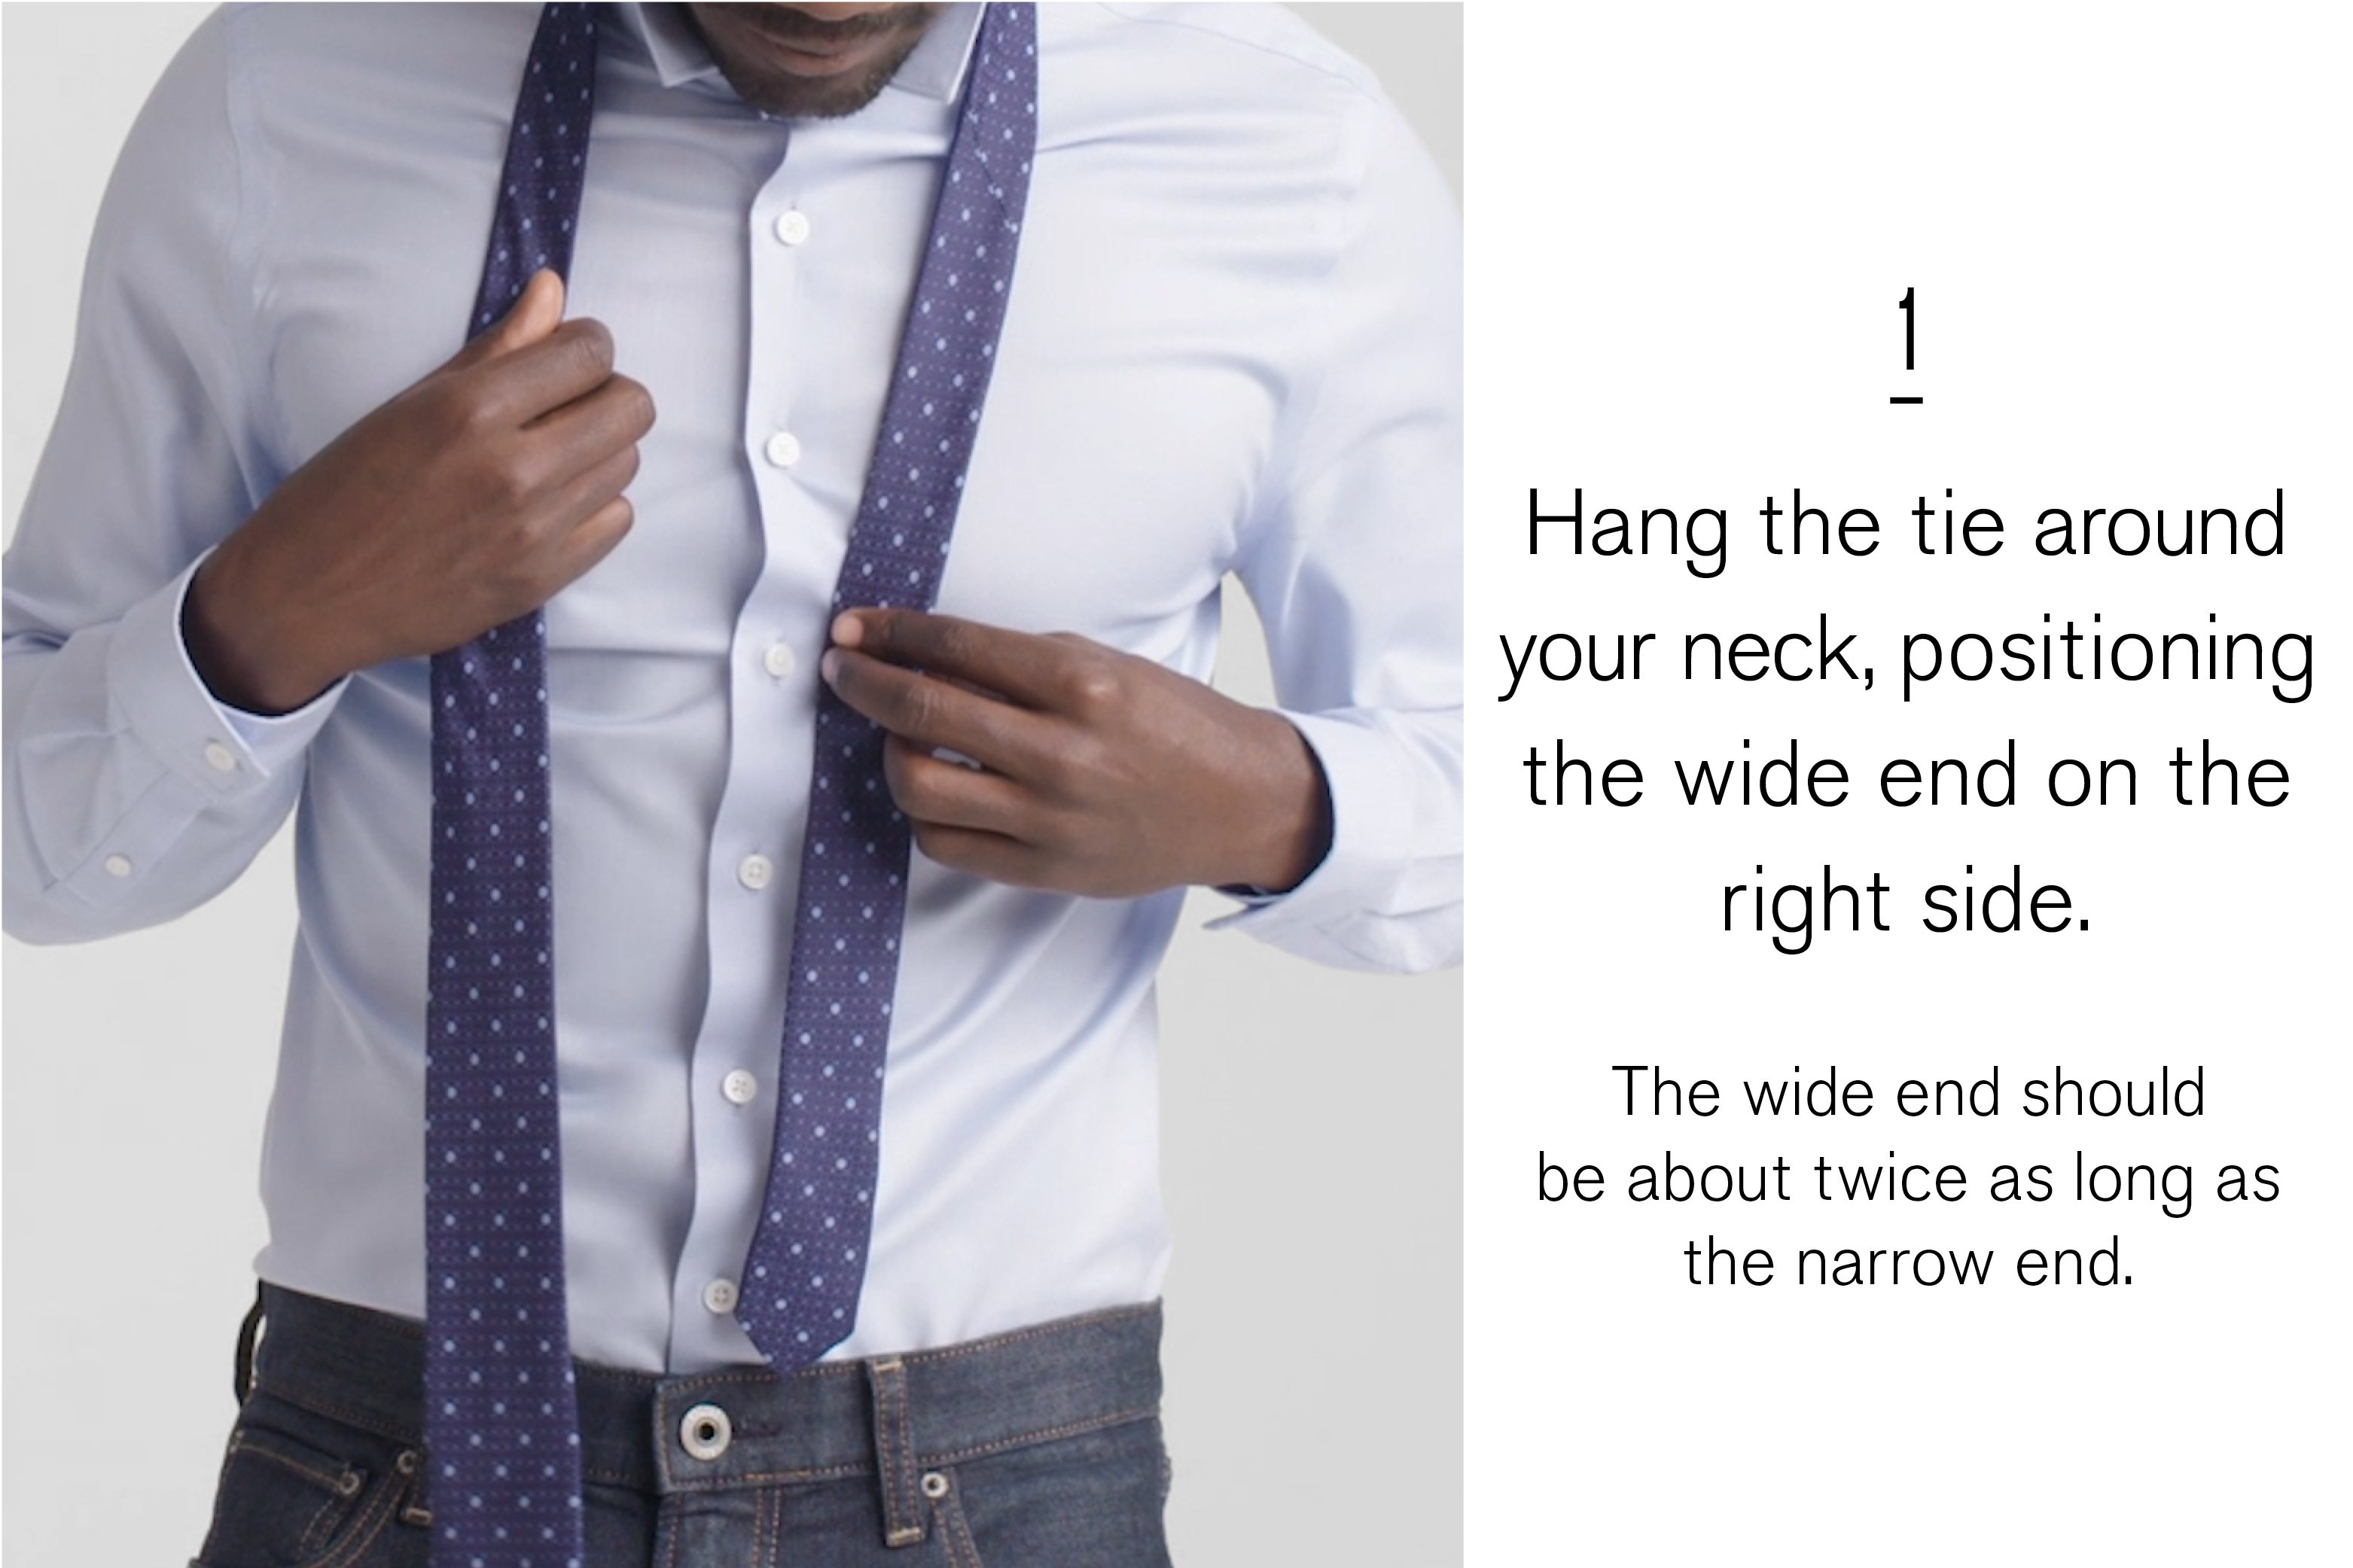 hang-the-tie-around-your-neck-positioning-the-wide-end-on-the-right-side-the-wide-end-should-be-about-twice-as-long-as-the-narrow-end